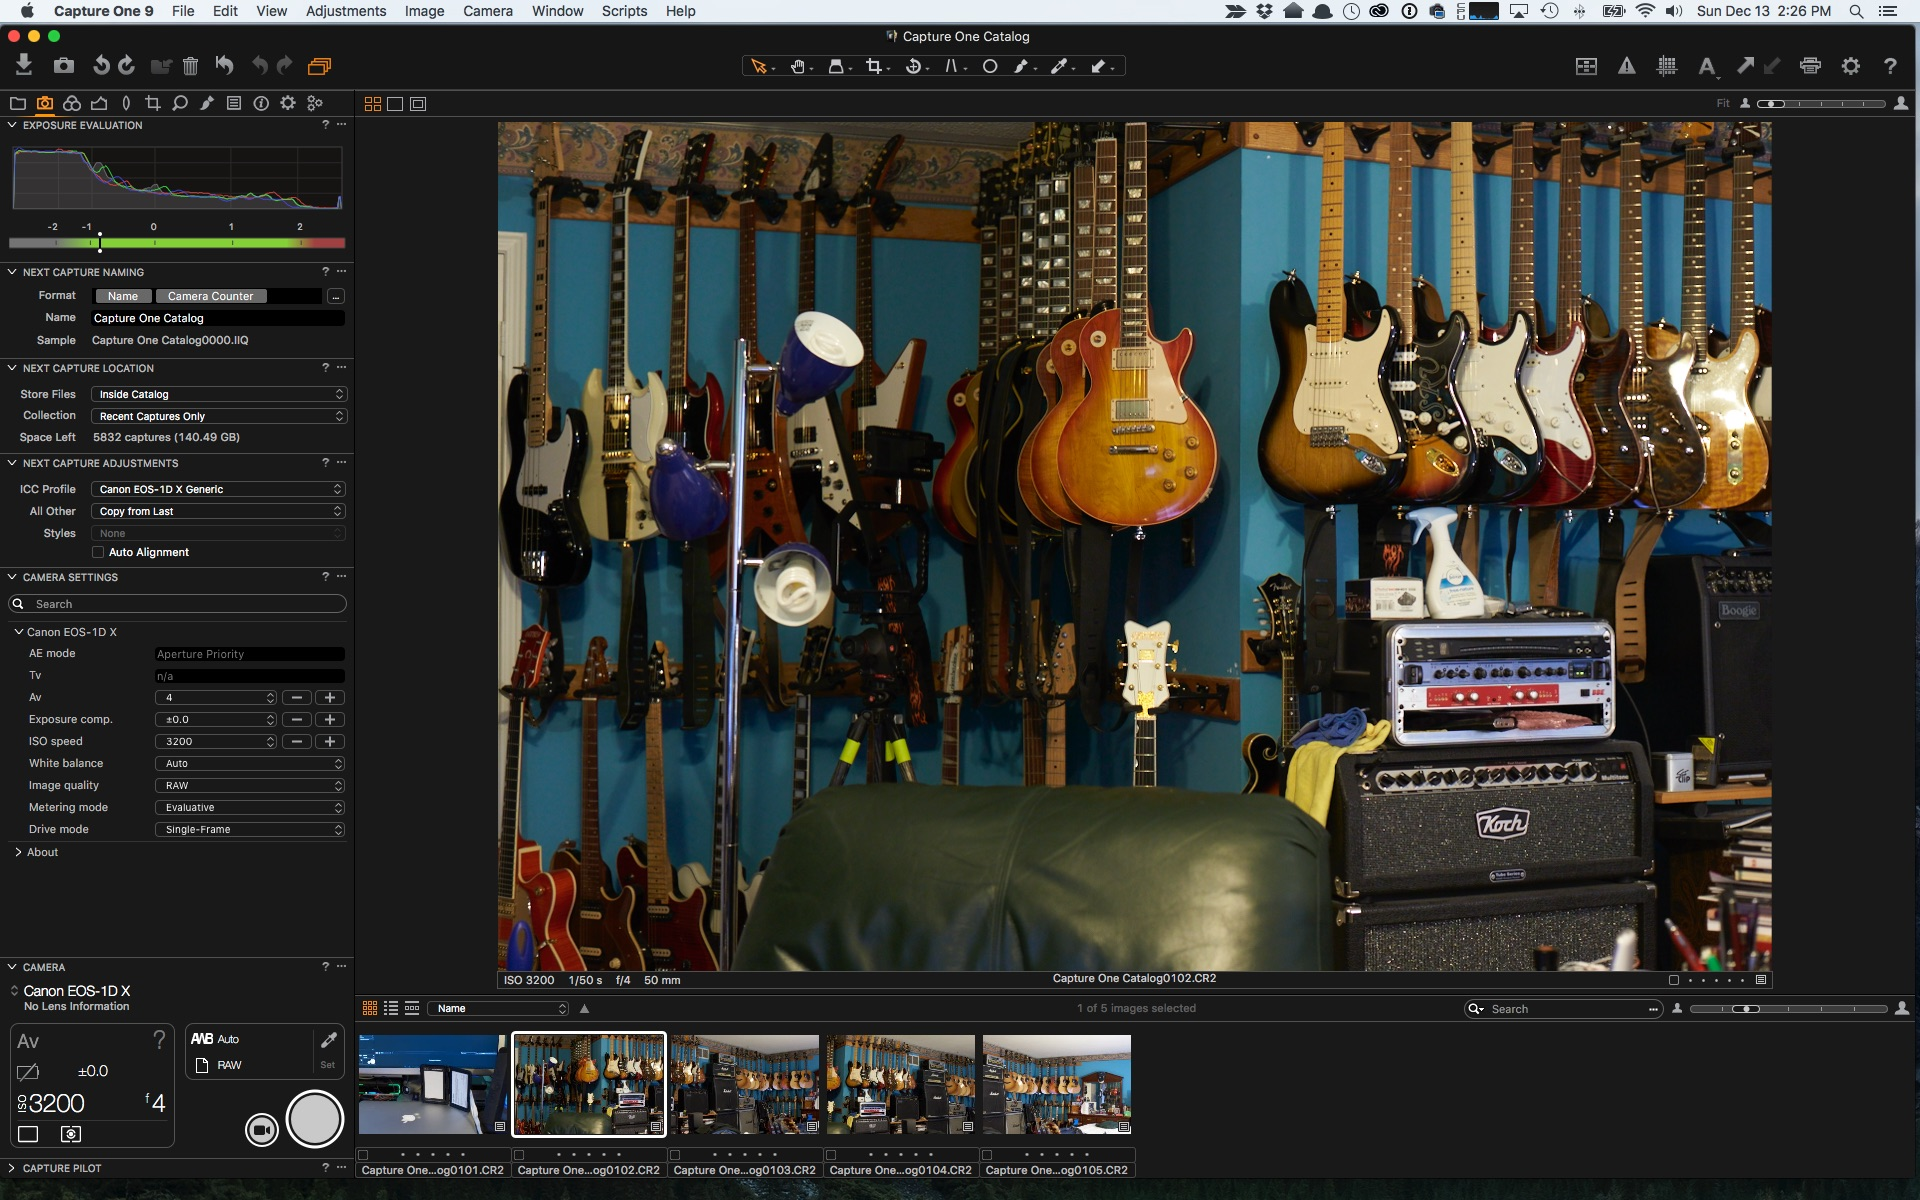 Quick screen capture from Capture One Pro 9 with the 1Dx tethered directly using a TetherTools cable